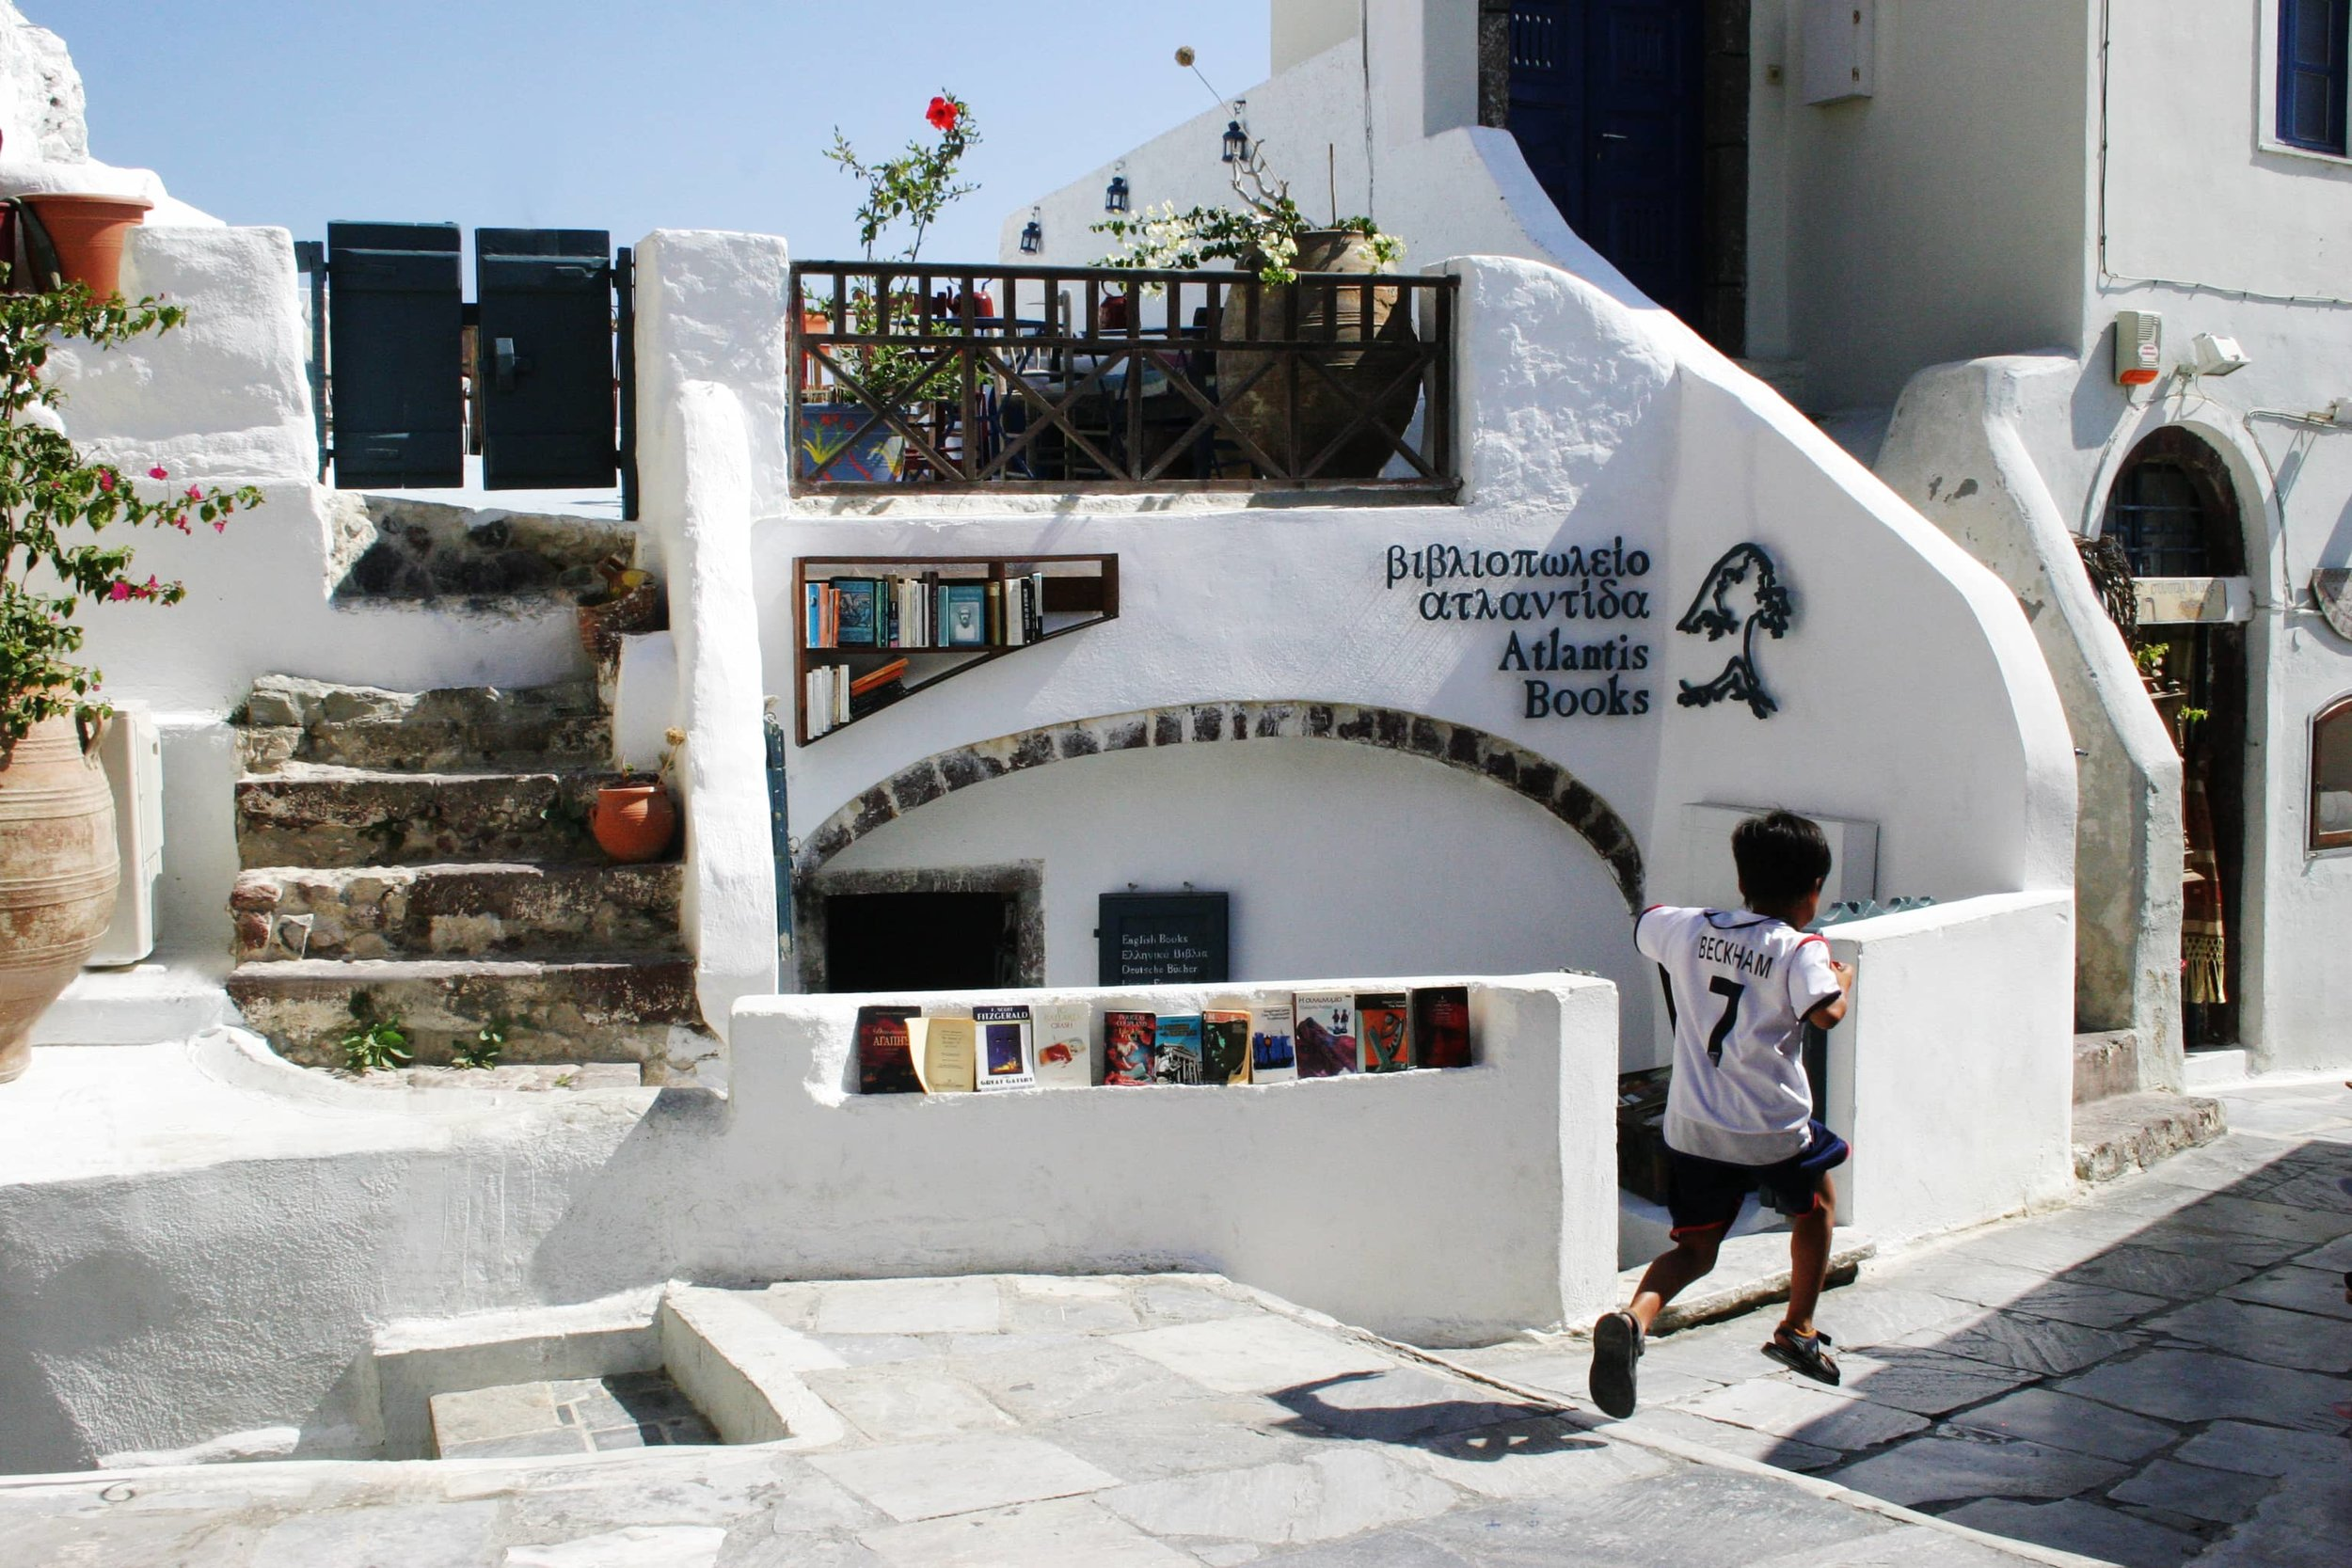 Atlantis Bookstore     - This underground cave is the island's only book stop. They have everything from classic literature to modern fiction and it's unique use of space and book nerd art, makes this an easy spot to relax on the rooftop overlooking the Caldera cliffside.